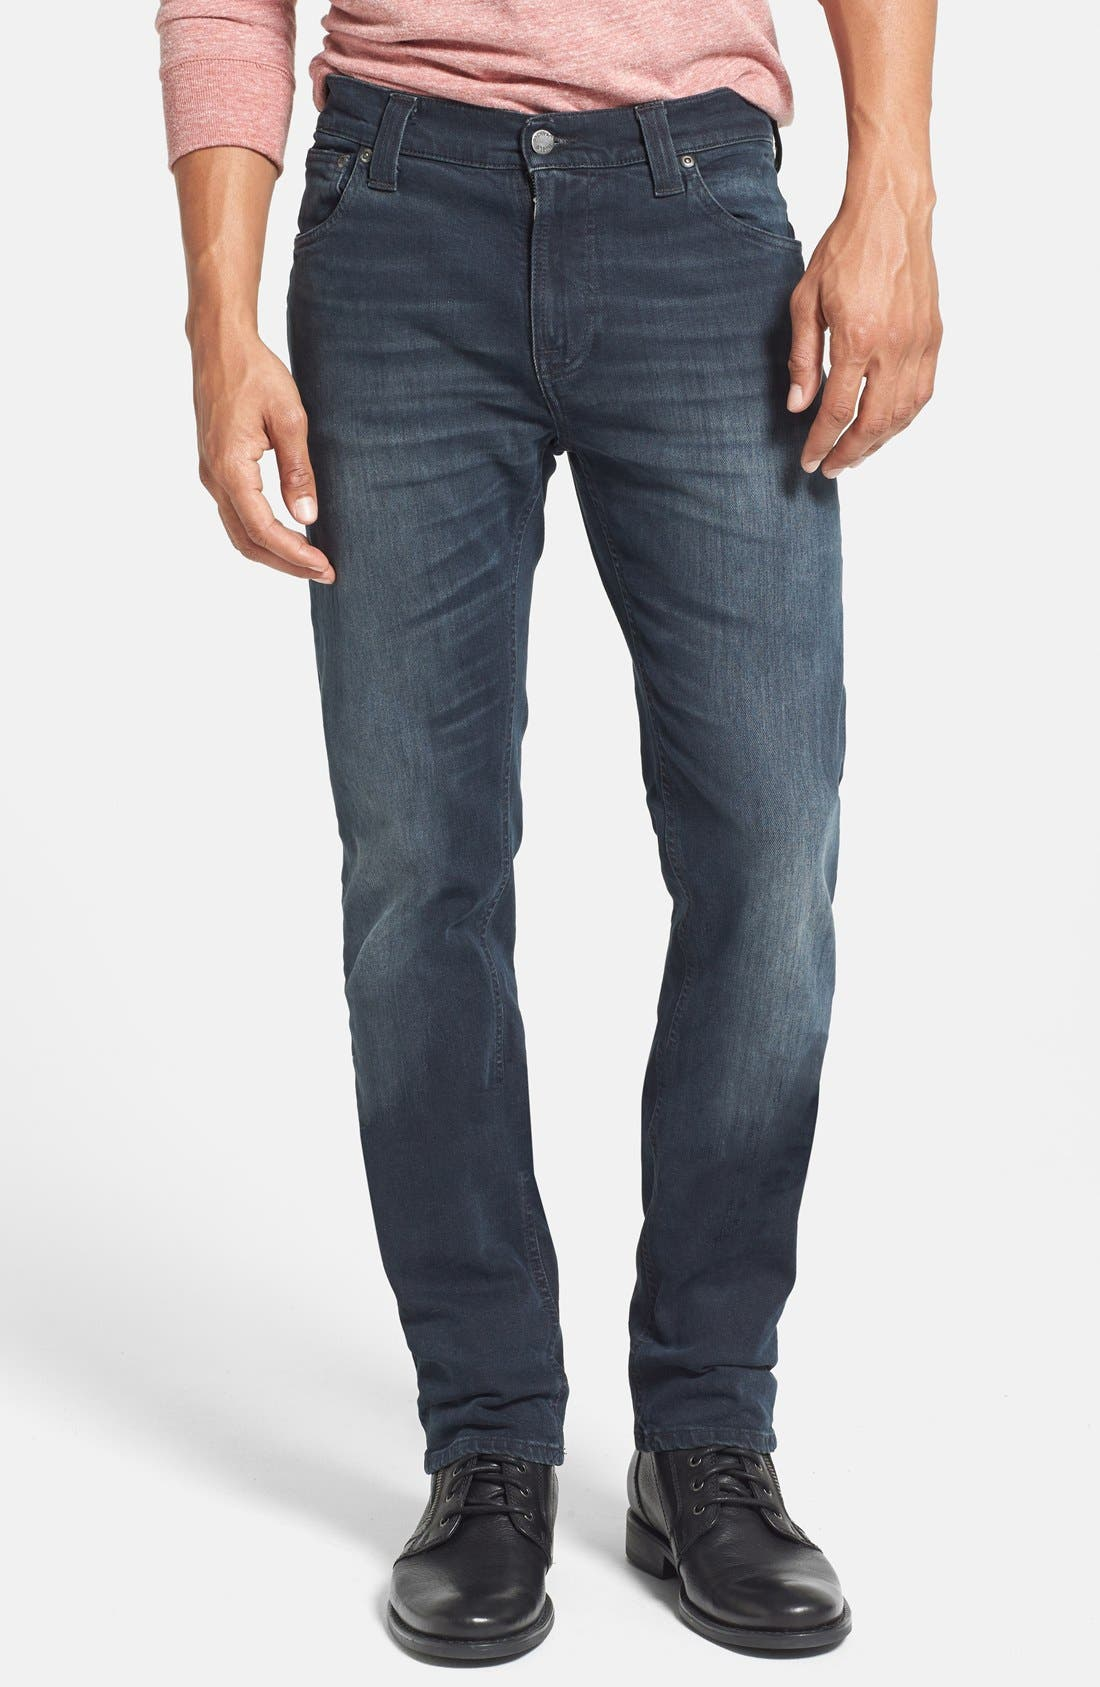 Alternate Image 1 Selected - Nudie Jeans 'Thin Finn' Skinny Fit Jeans (Organic Black Grey)